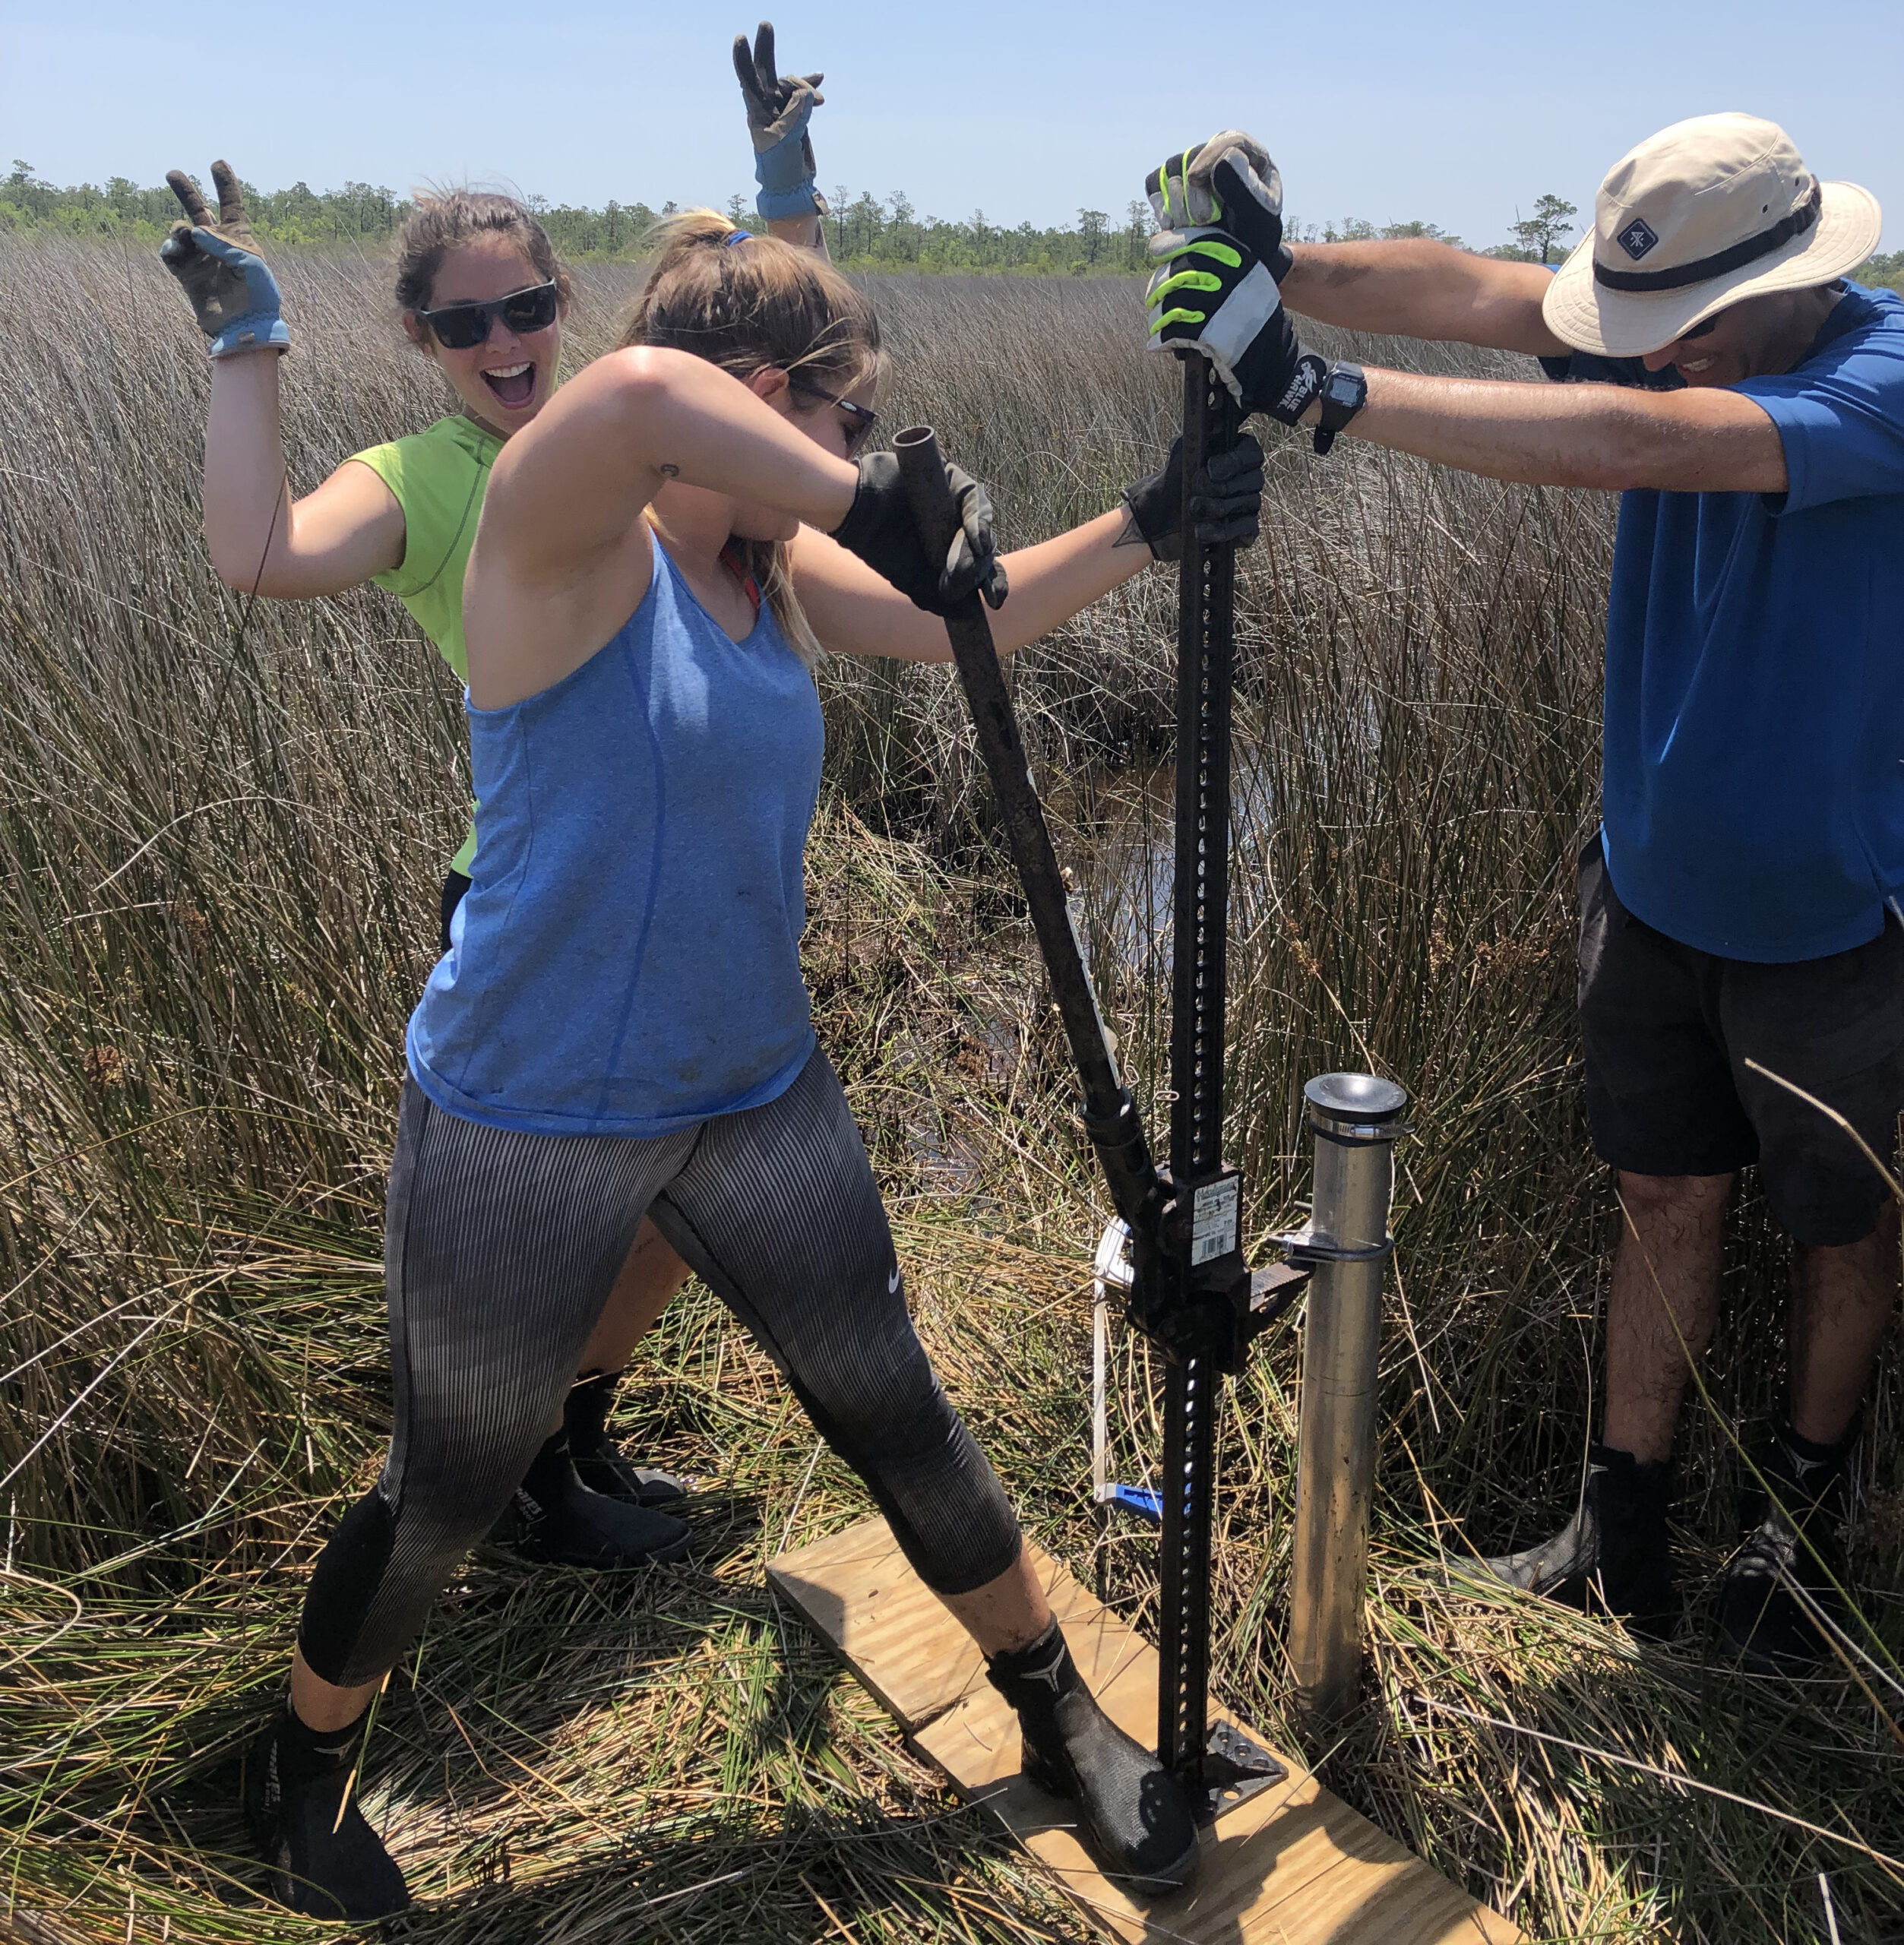 Carson Miller and Antonio Rodriguez pull a core out of the salt marsh with a ratchet jack. In the background, Molly Bost offers encouragement. Photo: Emily Eidam